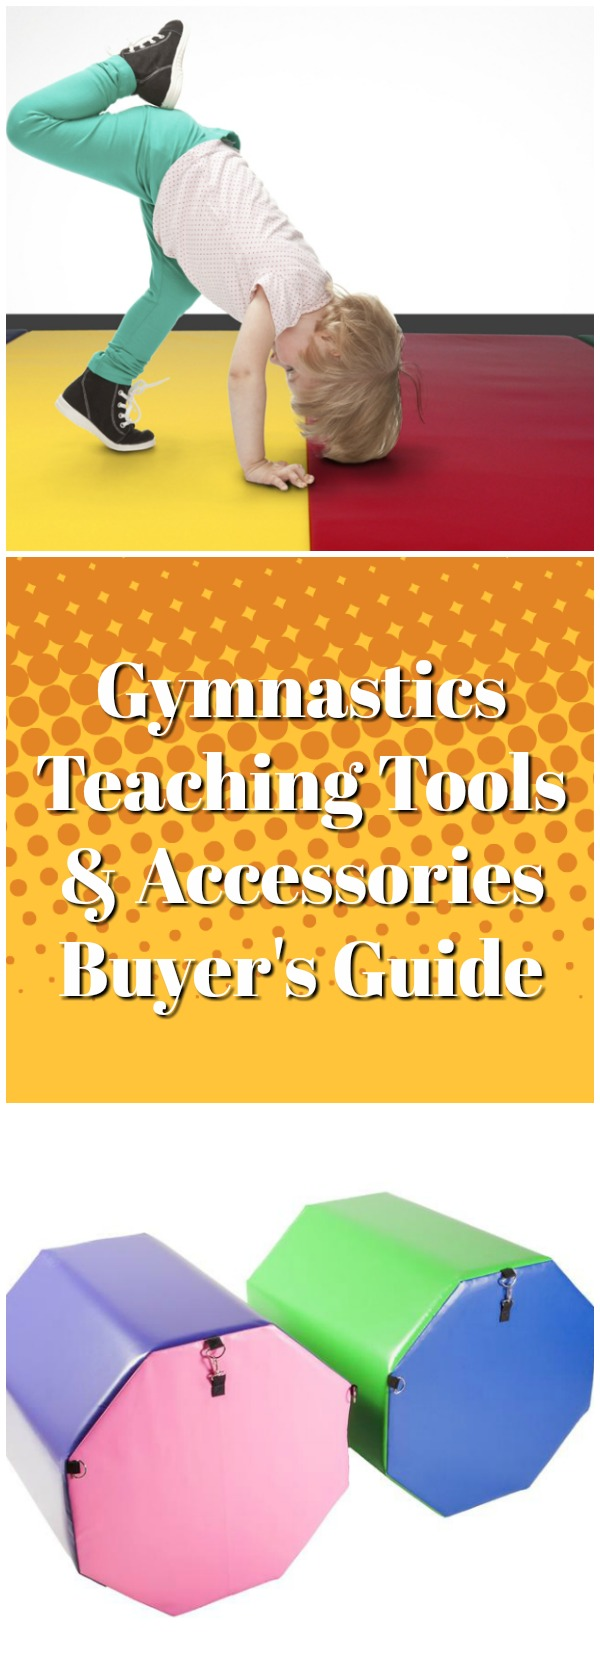 gym-teaching-tools-guide